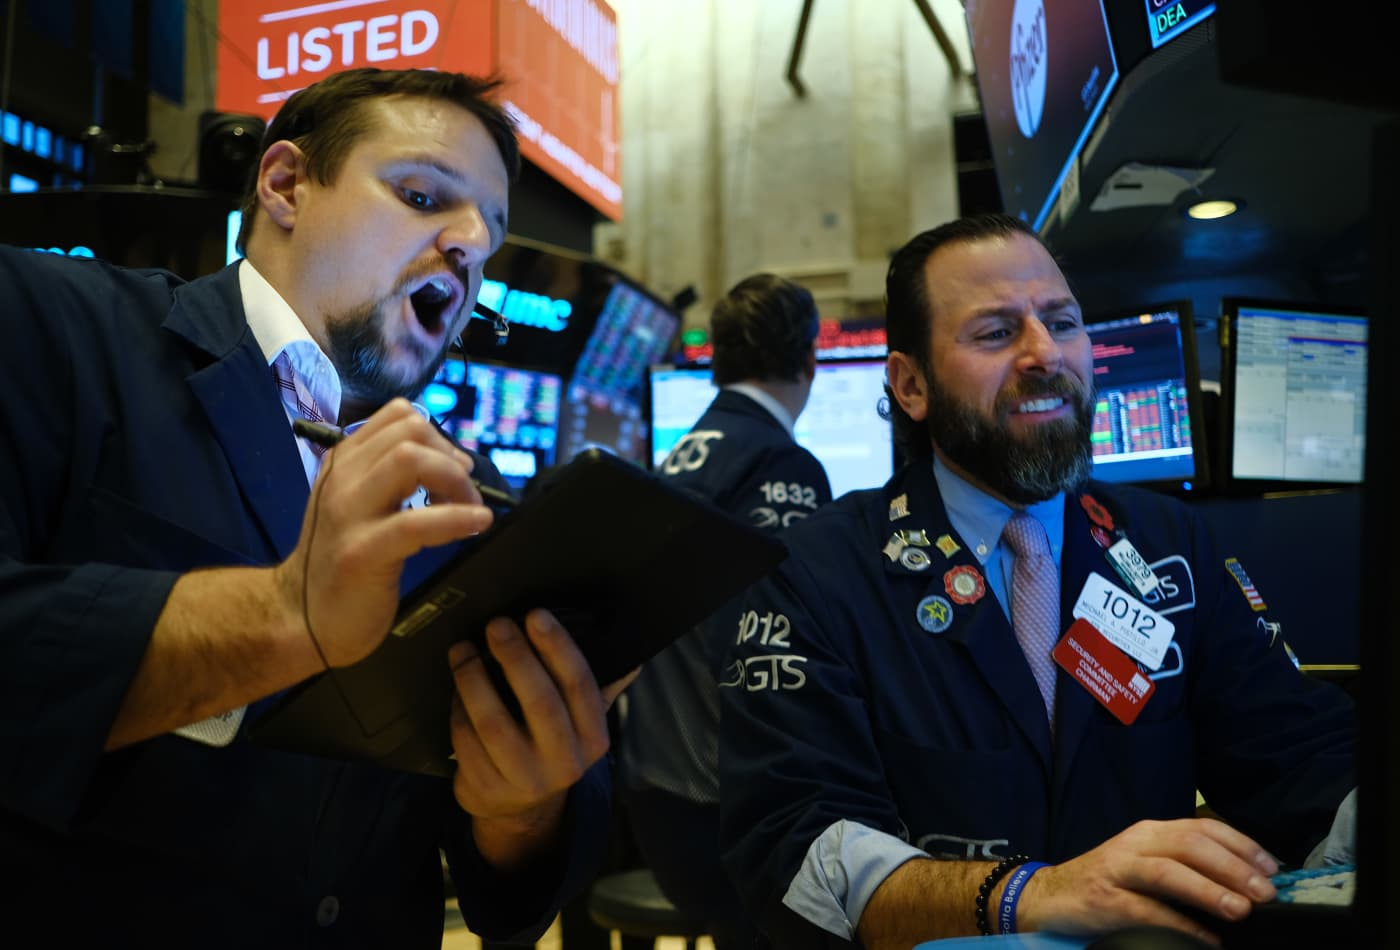 Wall Street's traders are on the decline—Here's what's hurting the lucrative profession